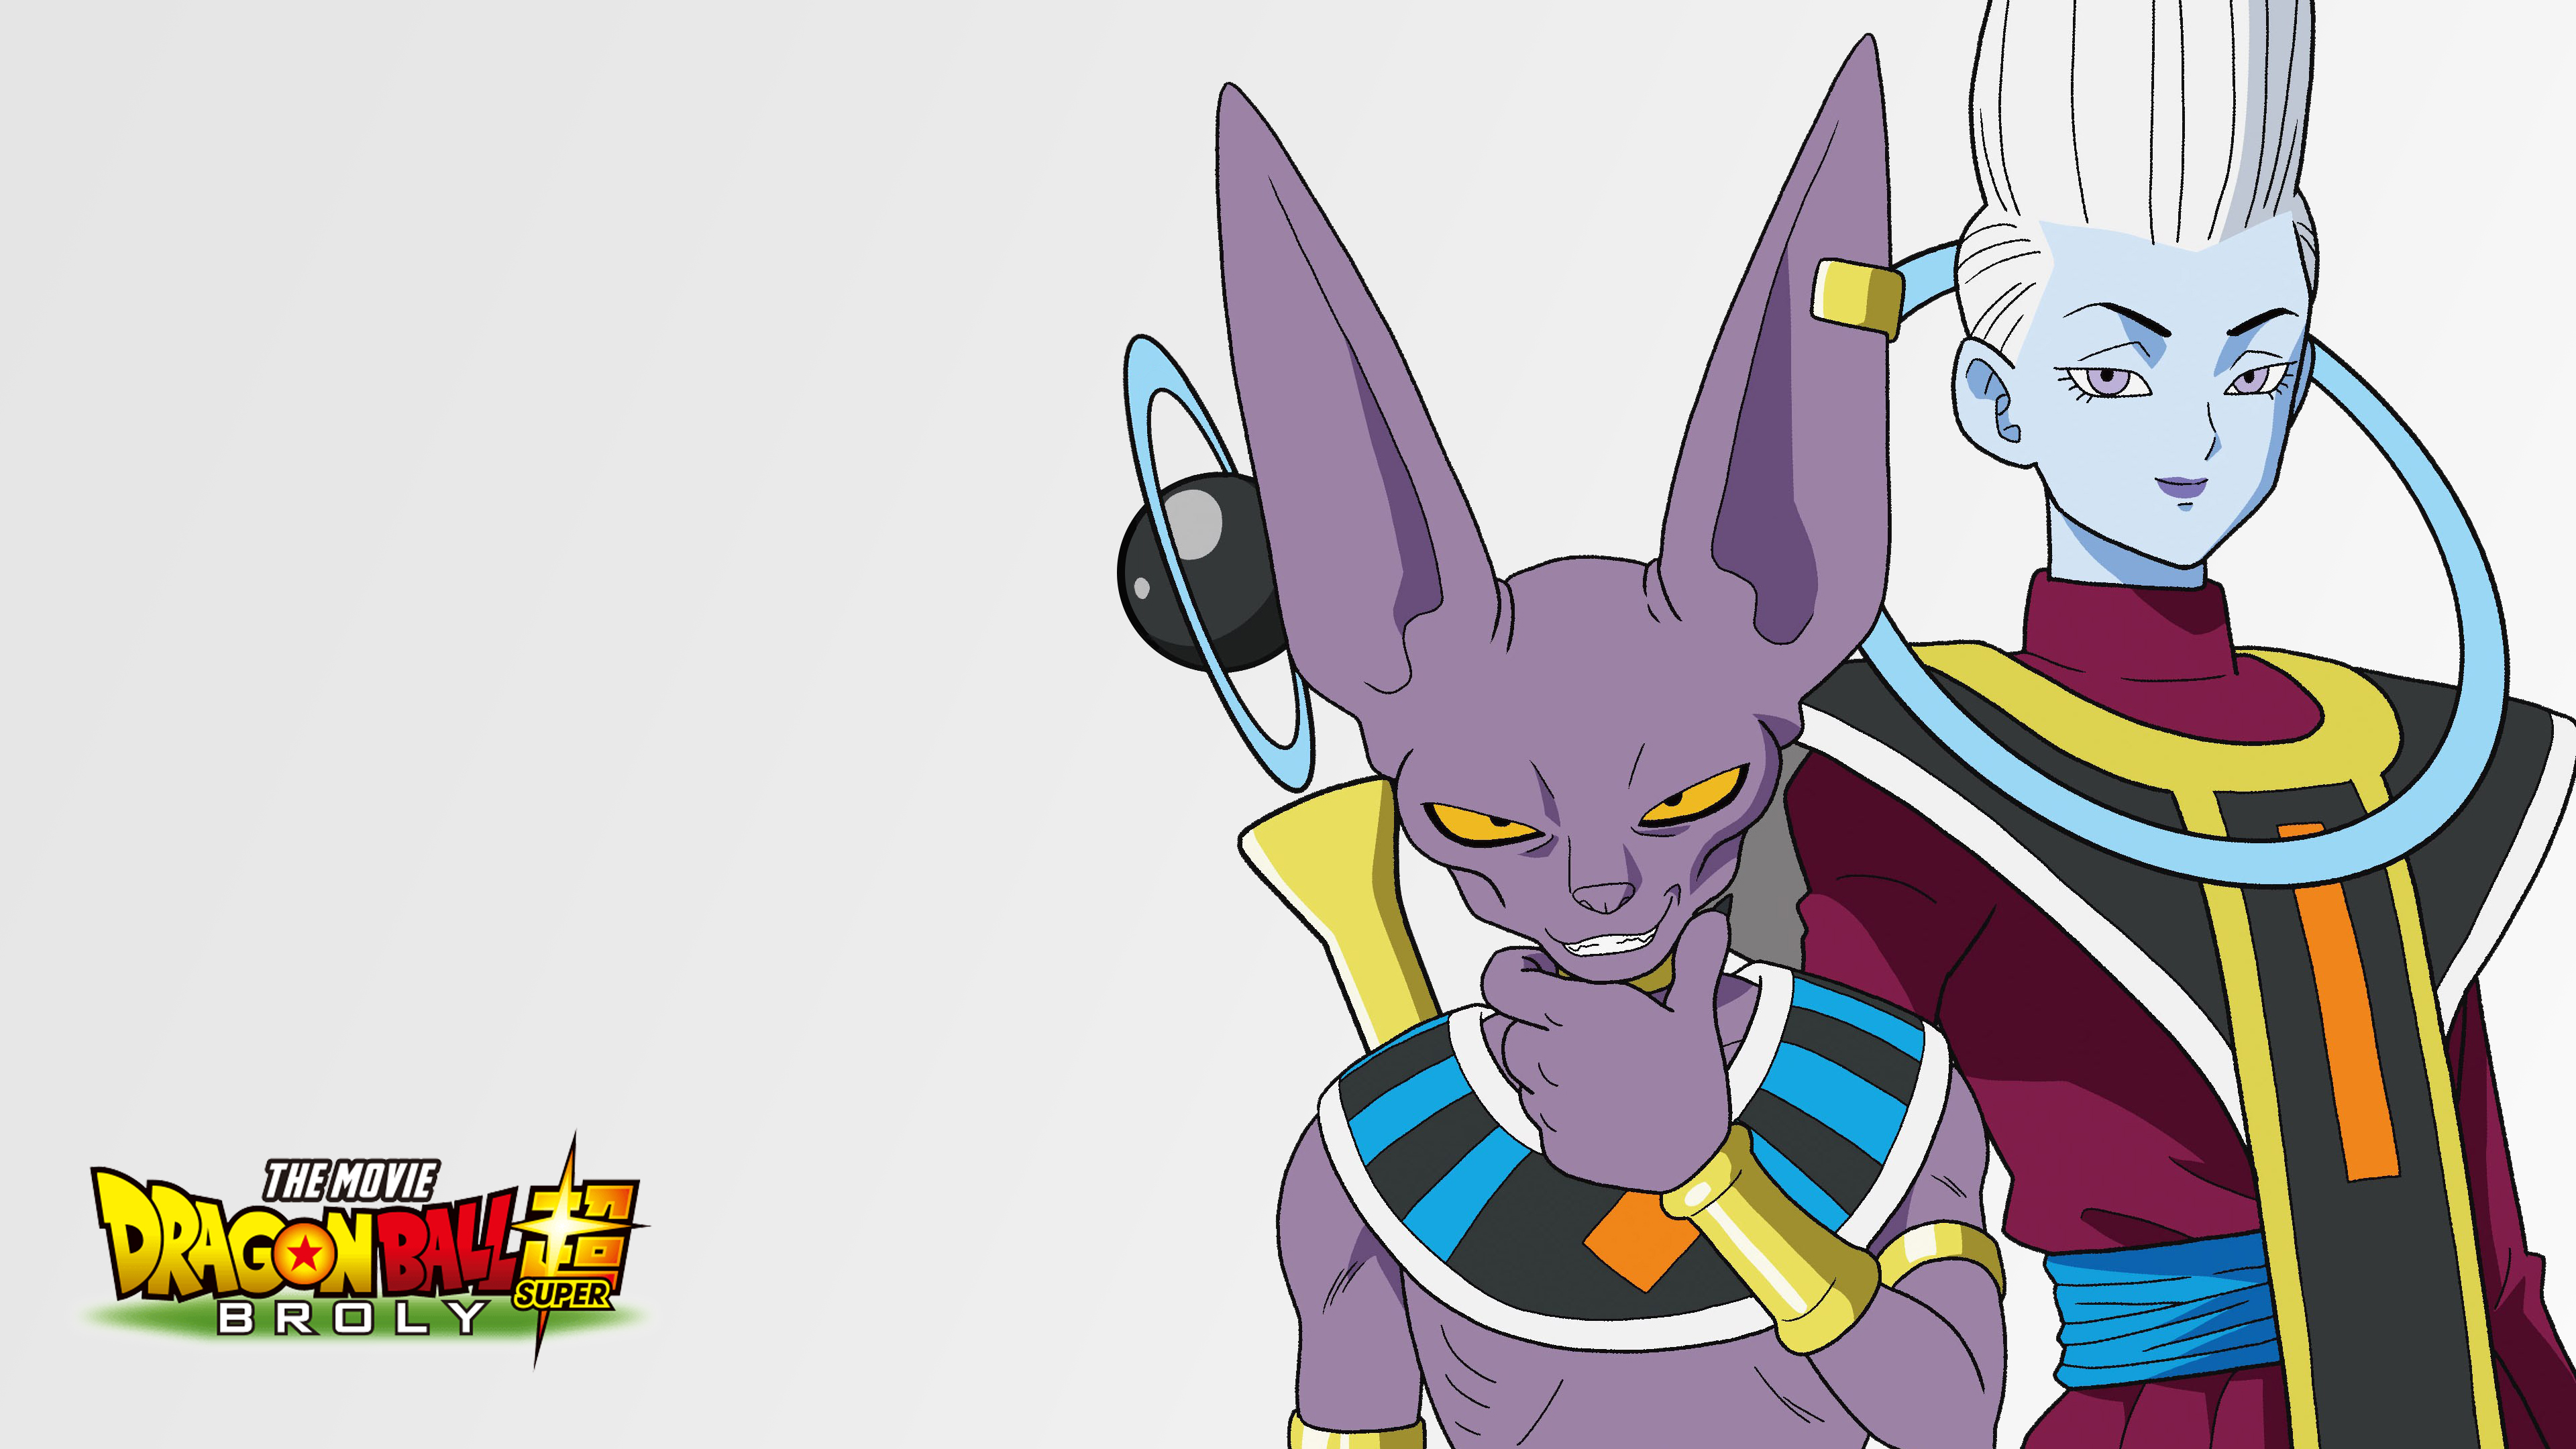 Samsung Galaxy S8 Wallpaper Hd Dragon Ball Super Broly Beerus And Whis Wallpapers Cat